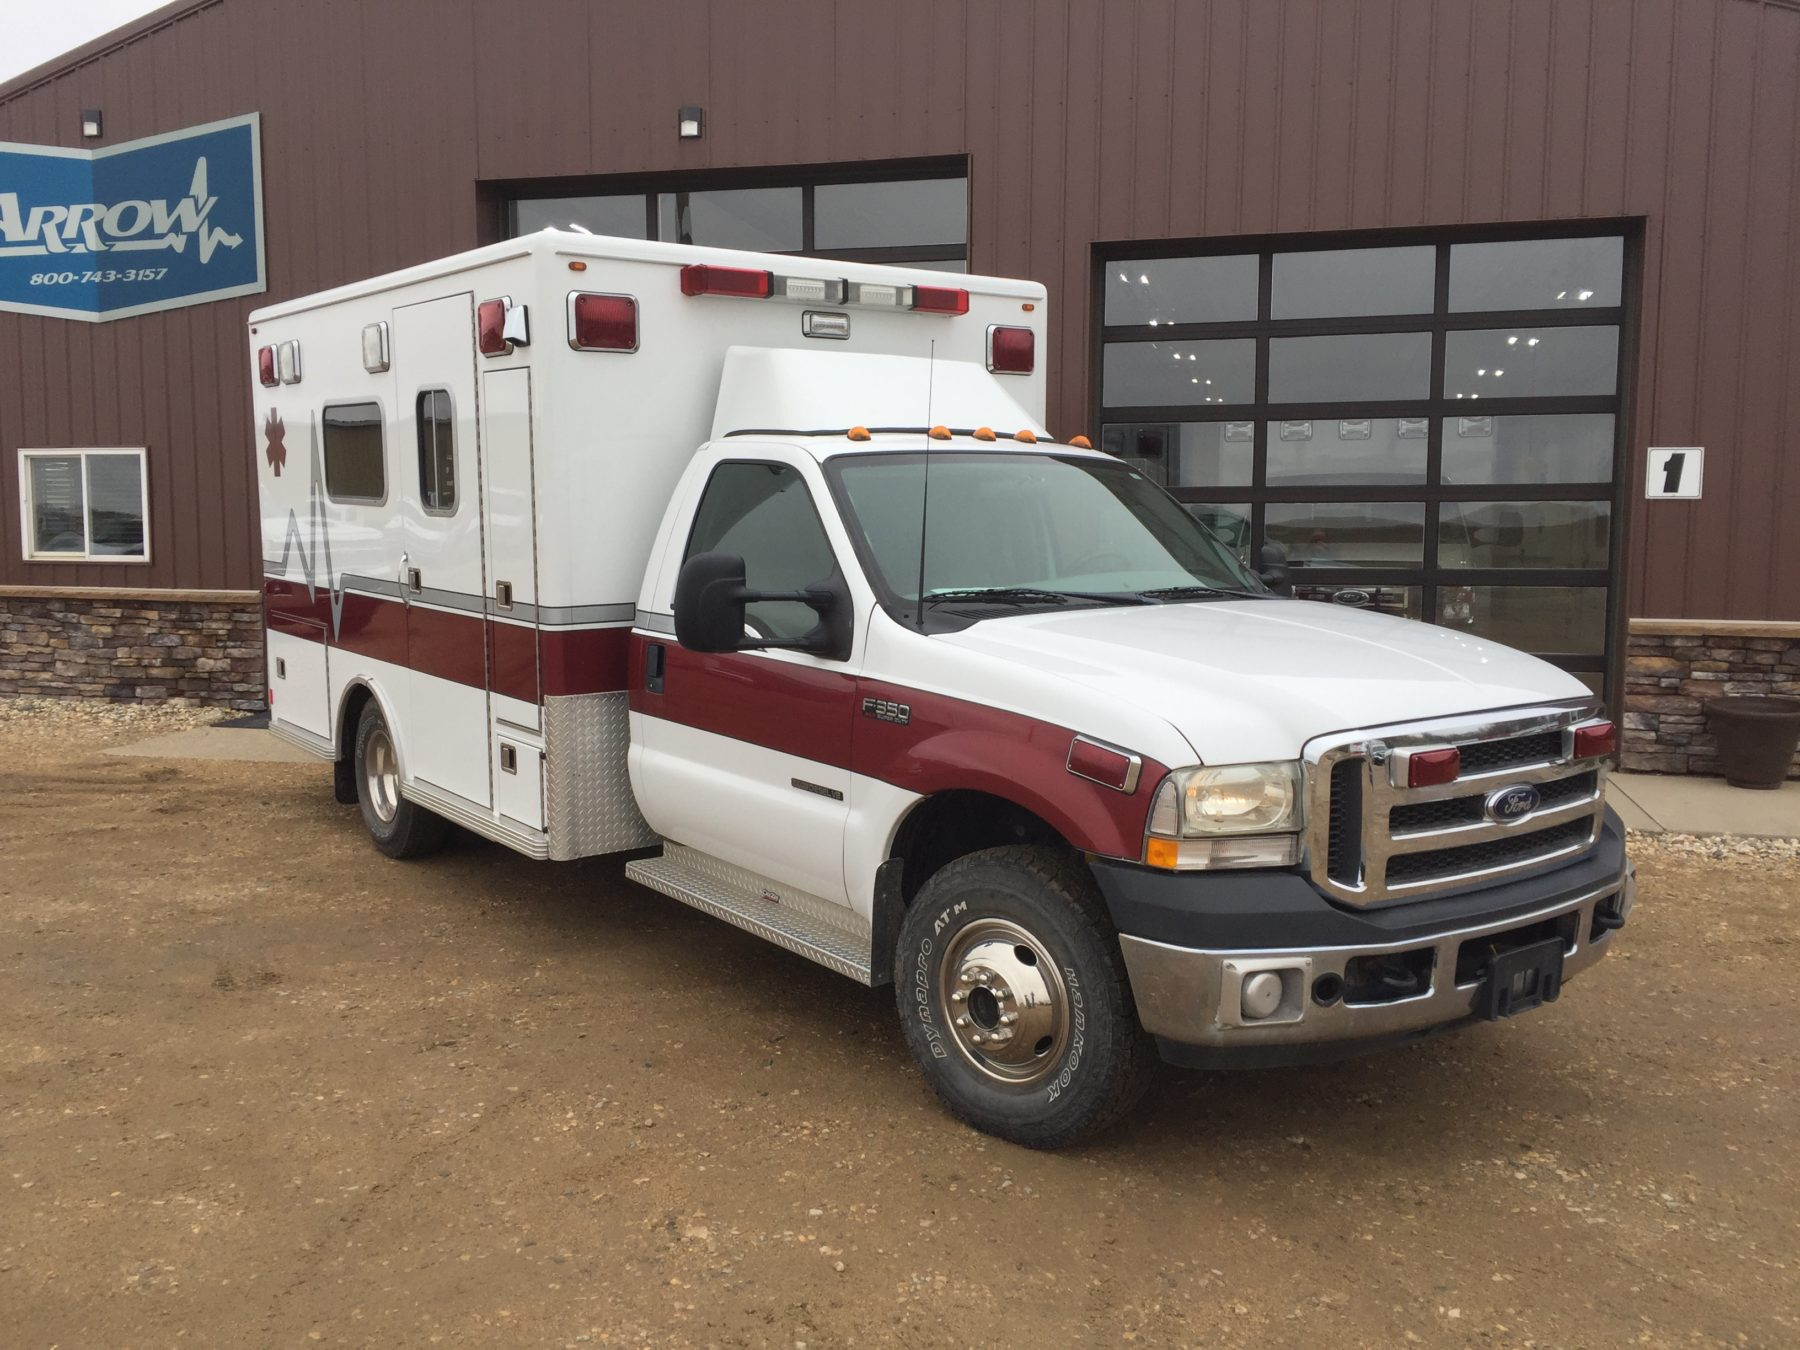 2002 Ford F350 4x4 Type 1 Ambulance For Sale – Picture 3